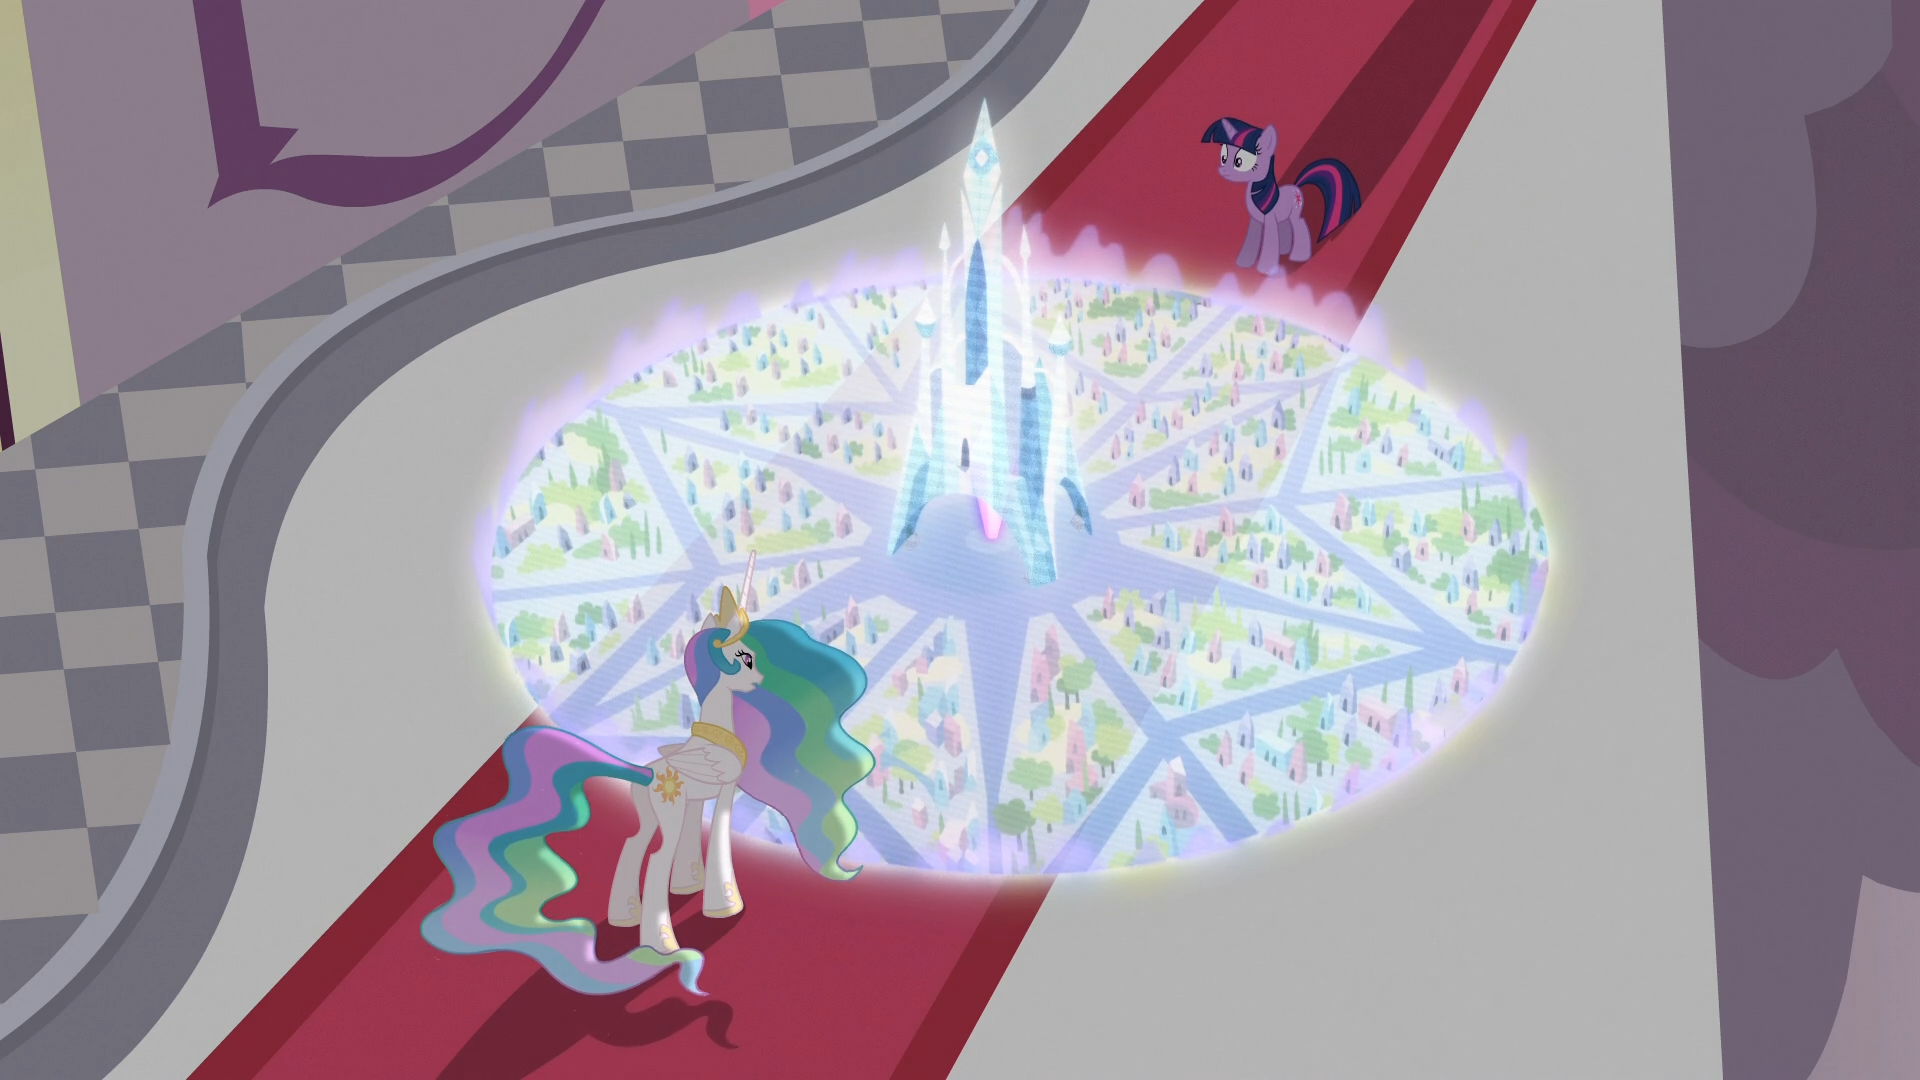 Princess Celestia shows Twilight how the Crystal Empire looks like S3E01.png